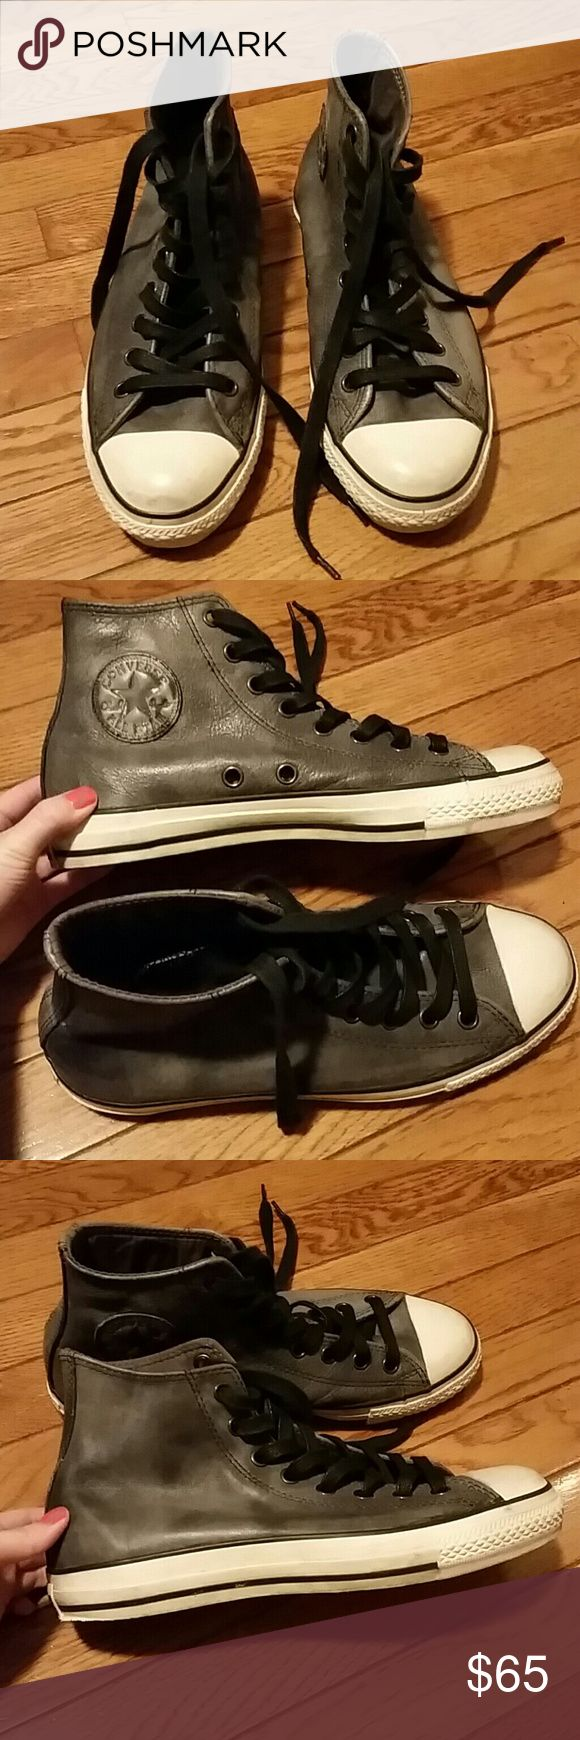 John Varvatos Leather Converse Unisex John Varvatos Leather Converse. Men's size 8, women's size 10. Still in good condition. Converse Shoes Sneakers